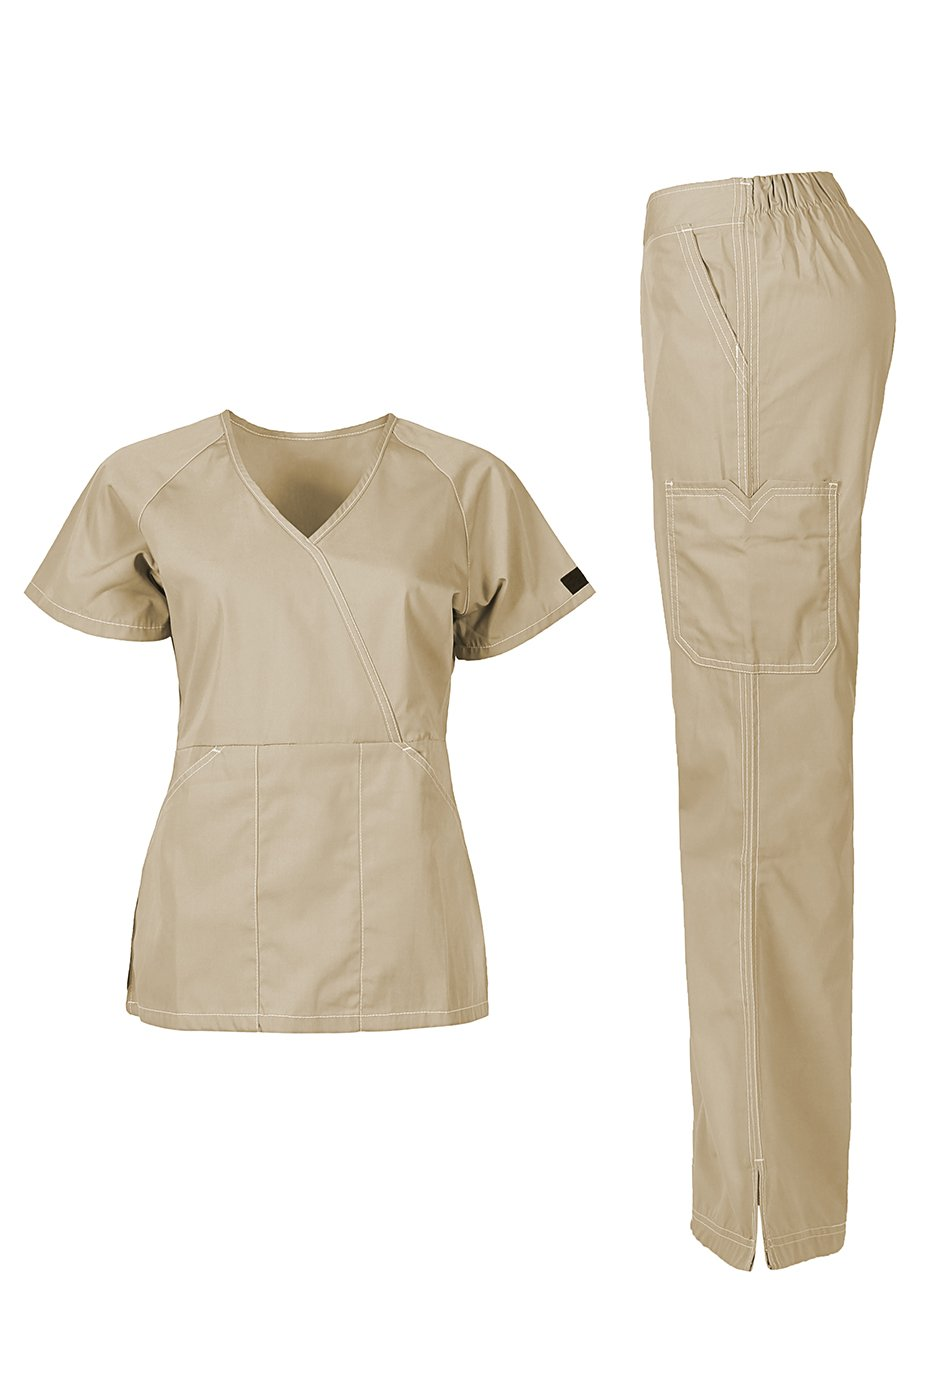 MedPro Women's Medical Scrub Set (Top & Bottom) Khaki M (5666)